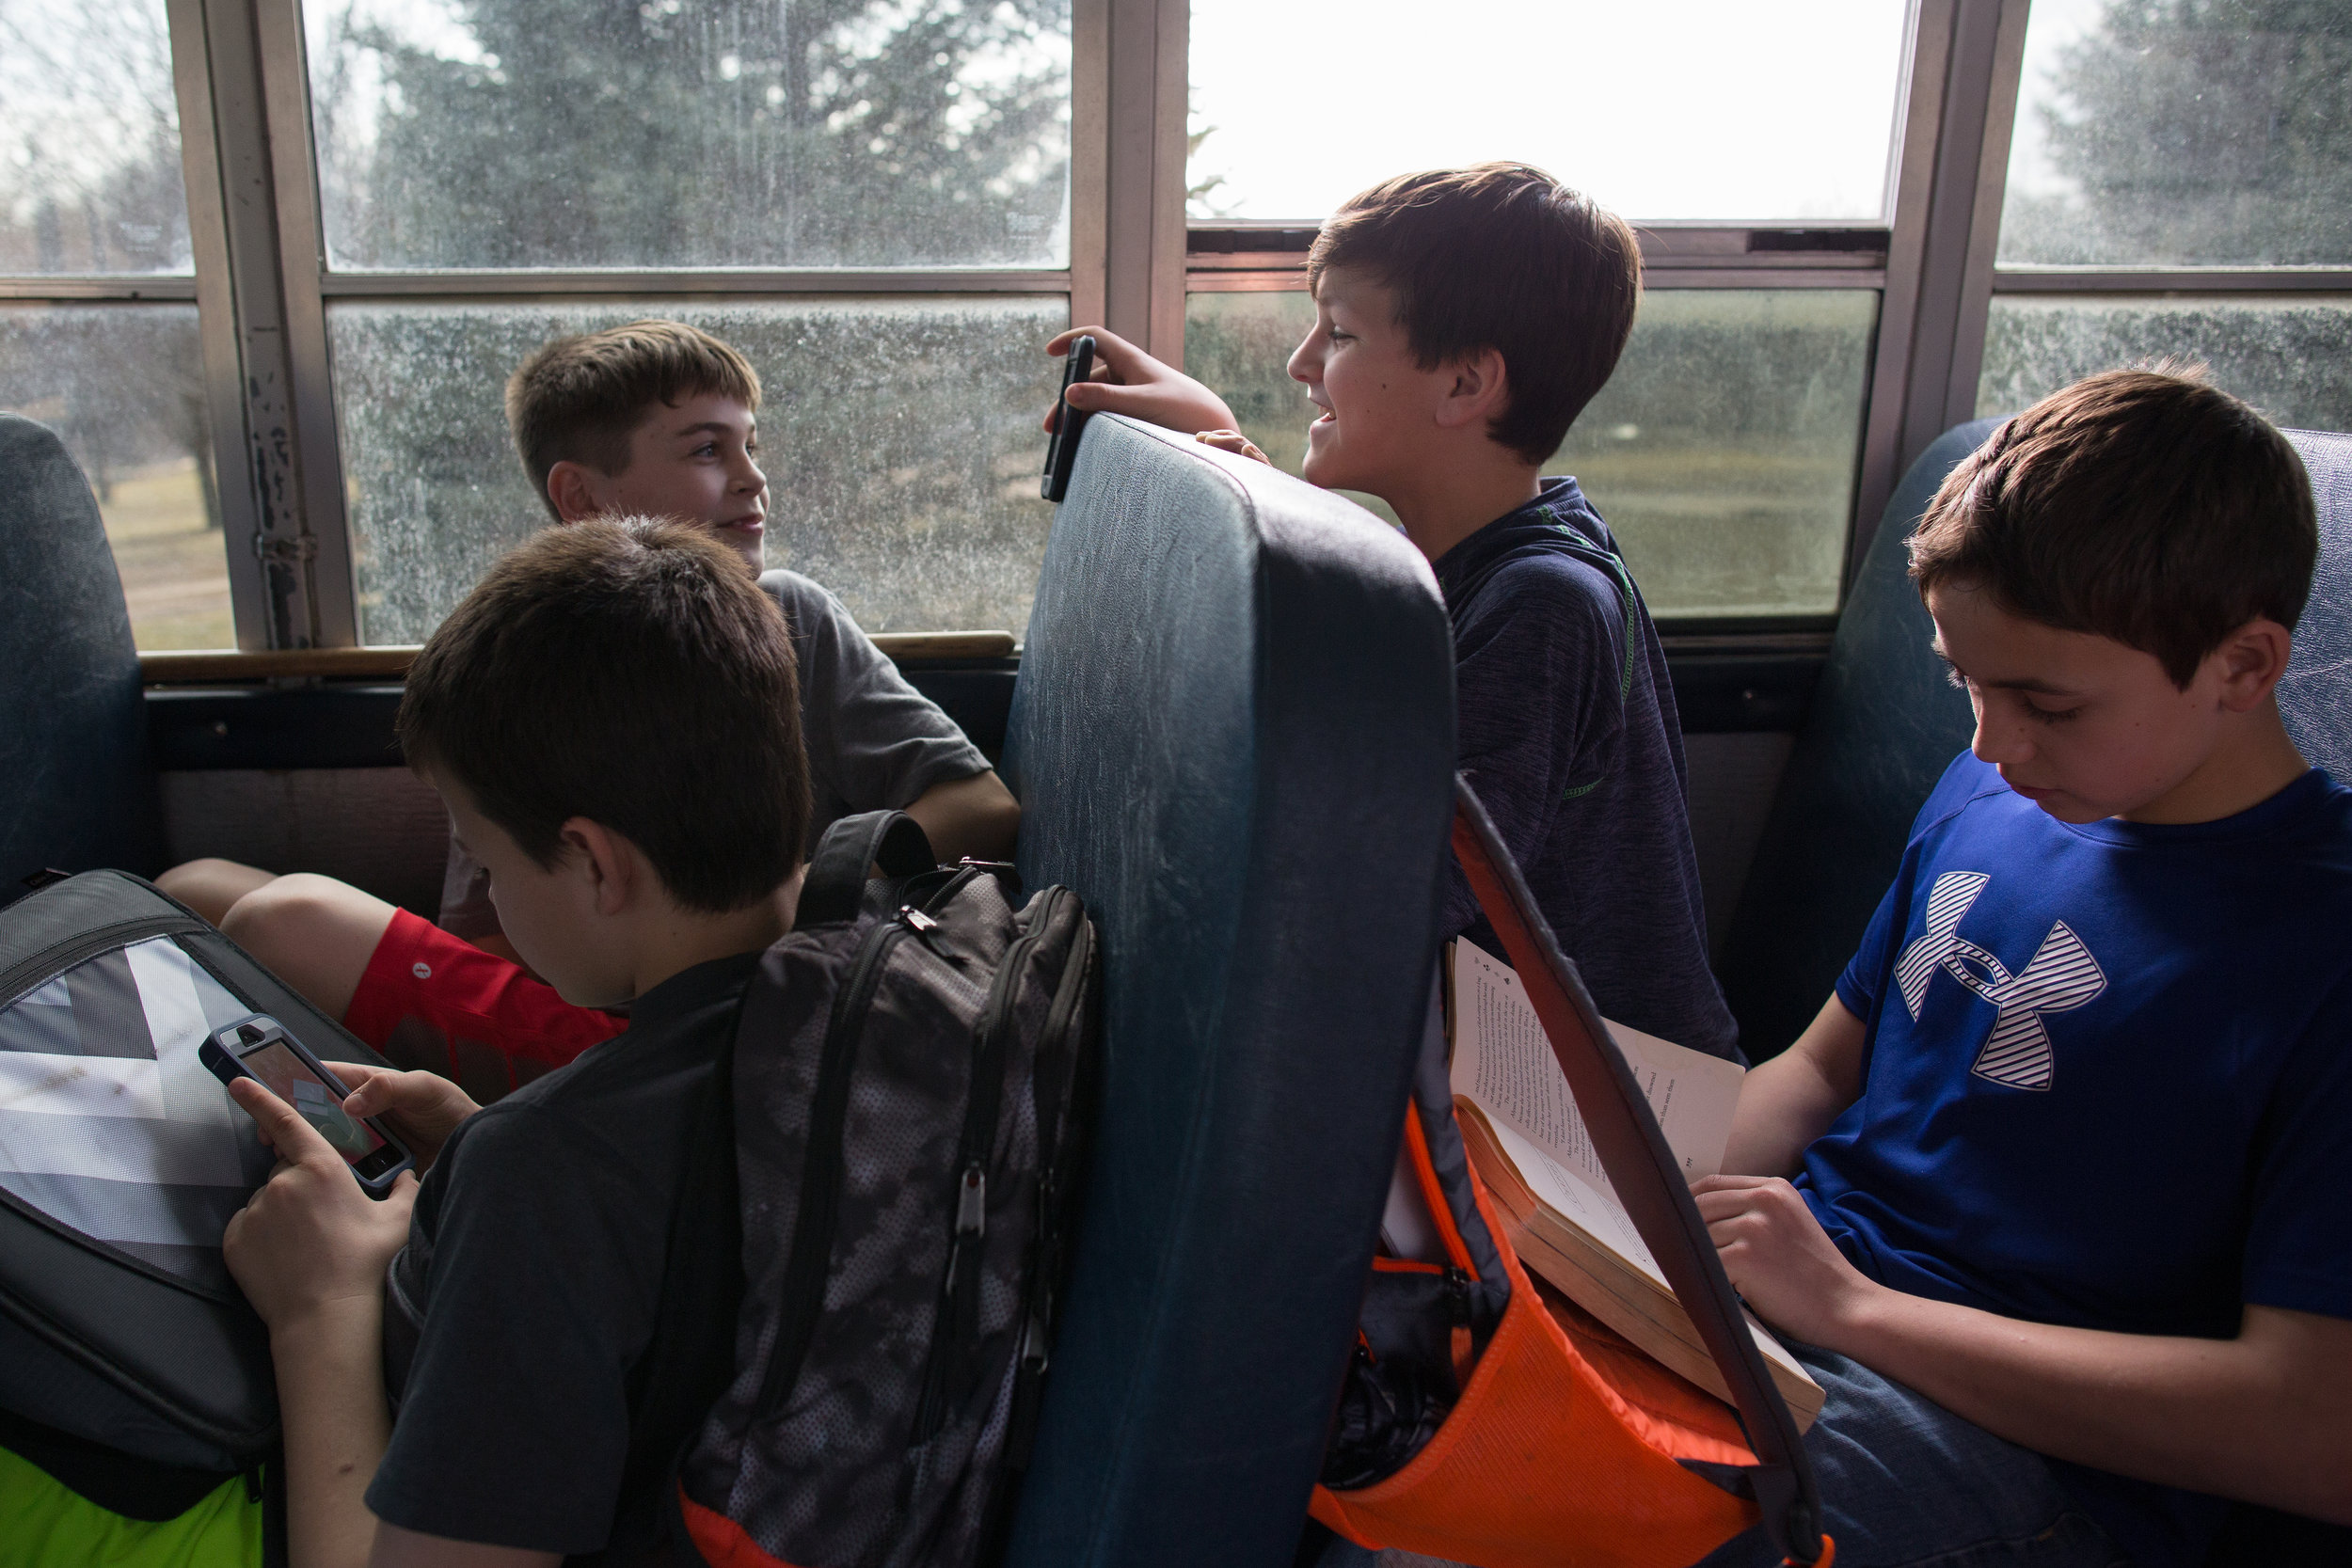 Hayden Taylor, Connor Patrick, Tyler Hancox, and Luke Luu (left to right) ride the bus home from school in Solon, Iowa on Tuesday, March 8, 2016.